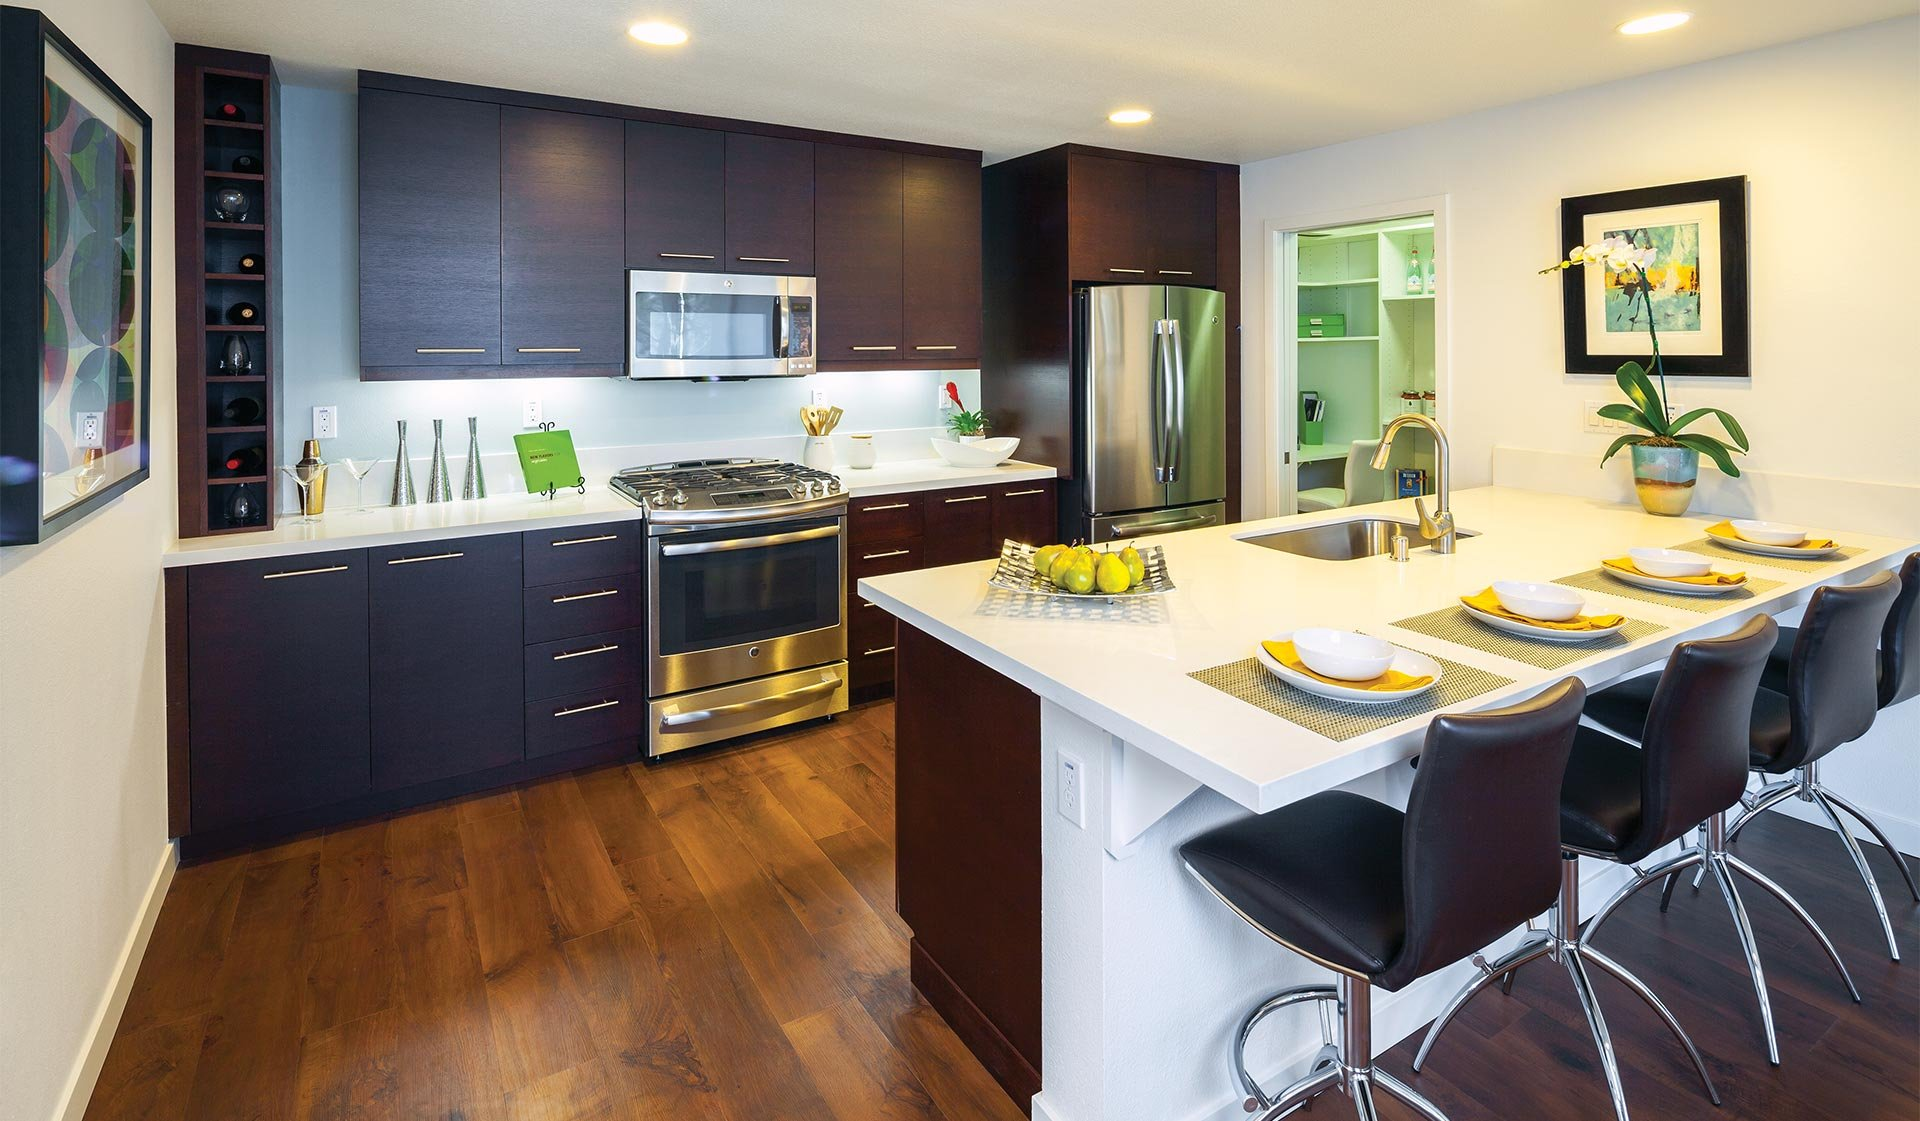 Preserve at Marin Apartment Homes in Corte Madera, CA - Kitchens